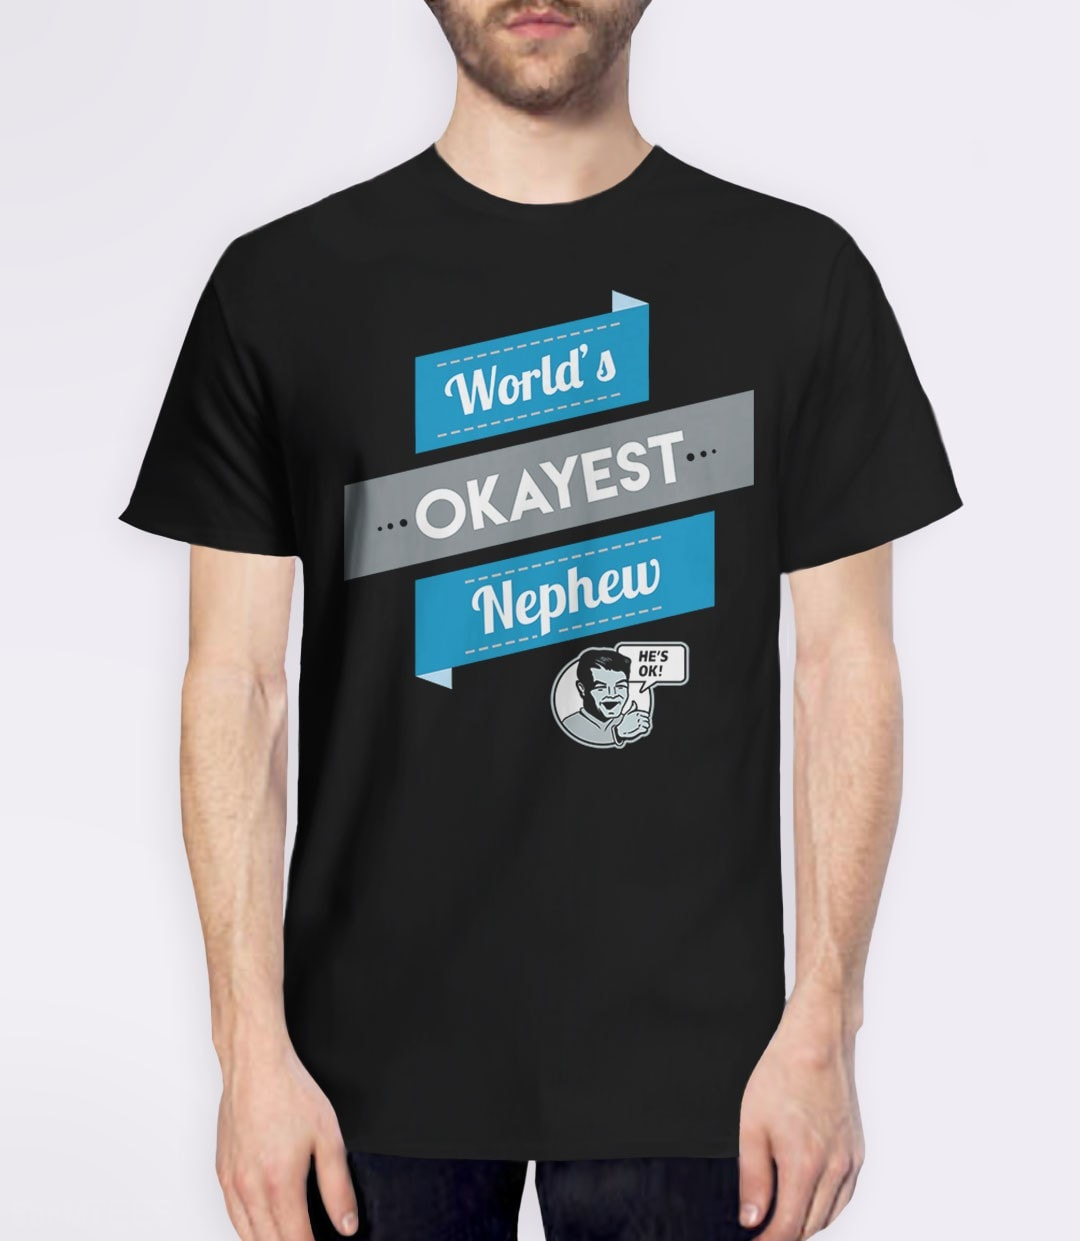 World's Okayest Nephew T-Shirt | vintage style mens tee